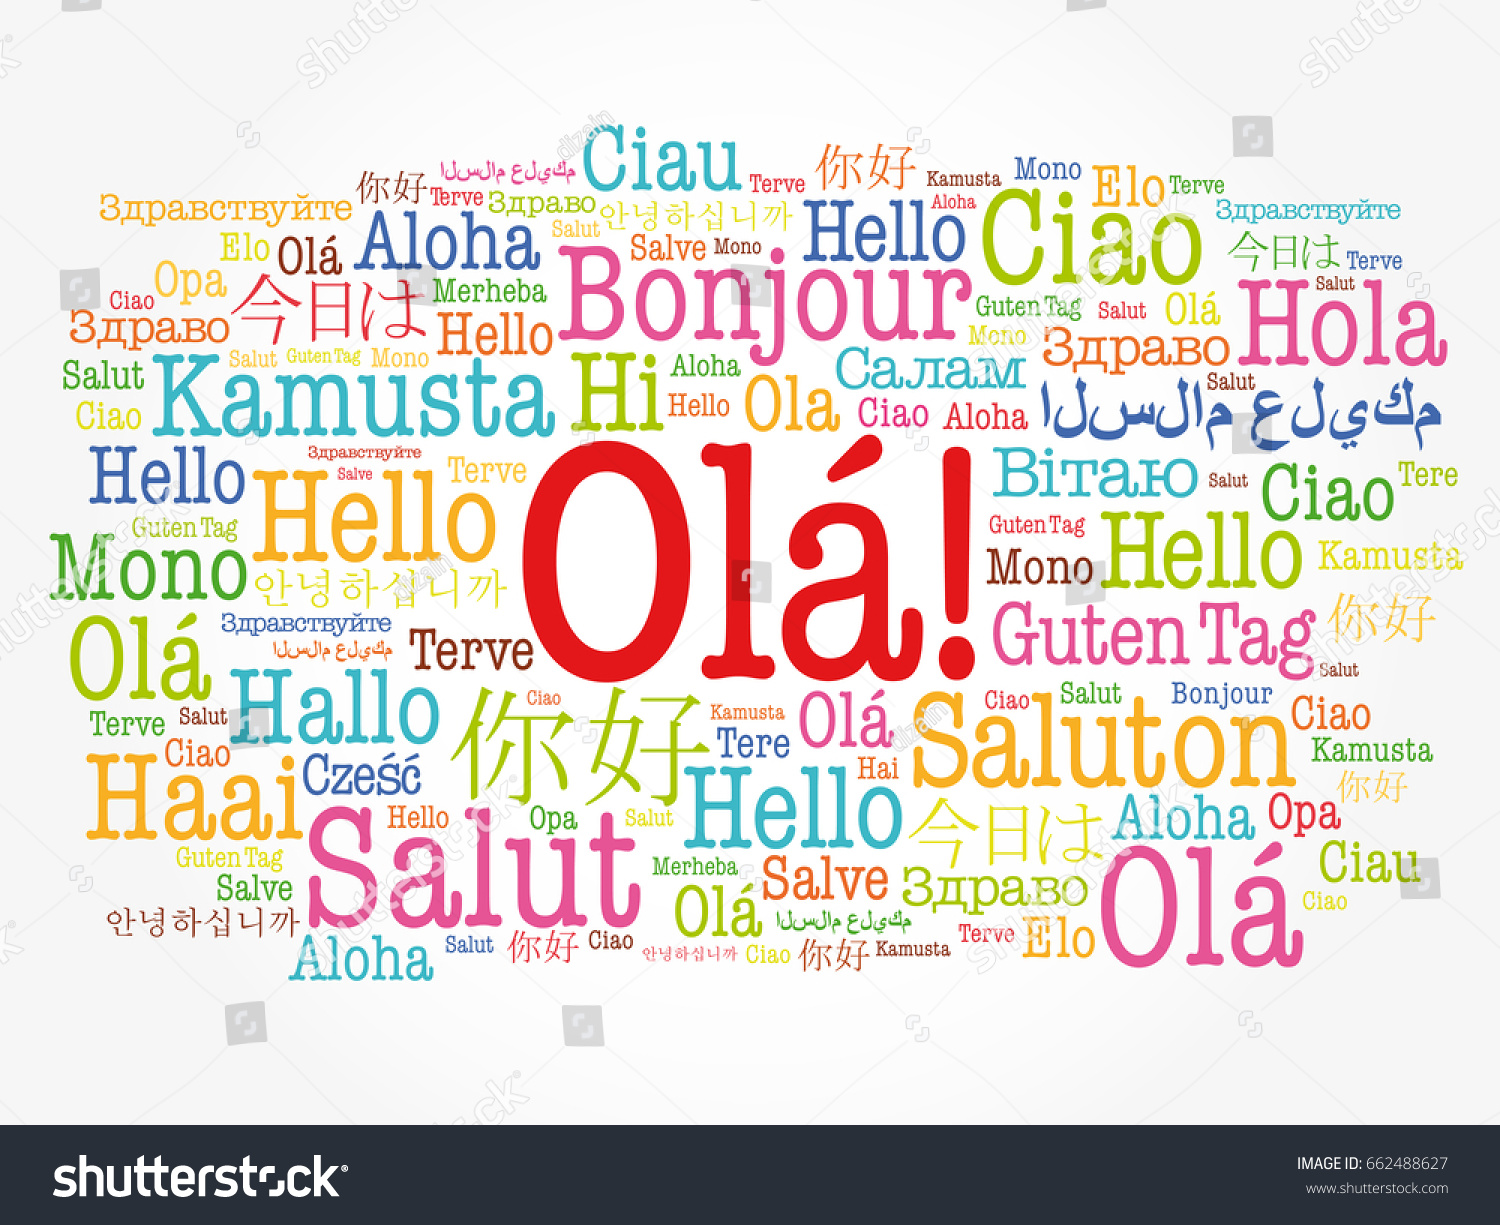 Ola hello greeting portuguese word cloud stock vector 662488627 ola hello greeting in portuguese word cloud in different languages of the world kristyandbryce Image collections